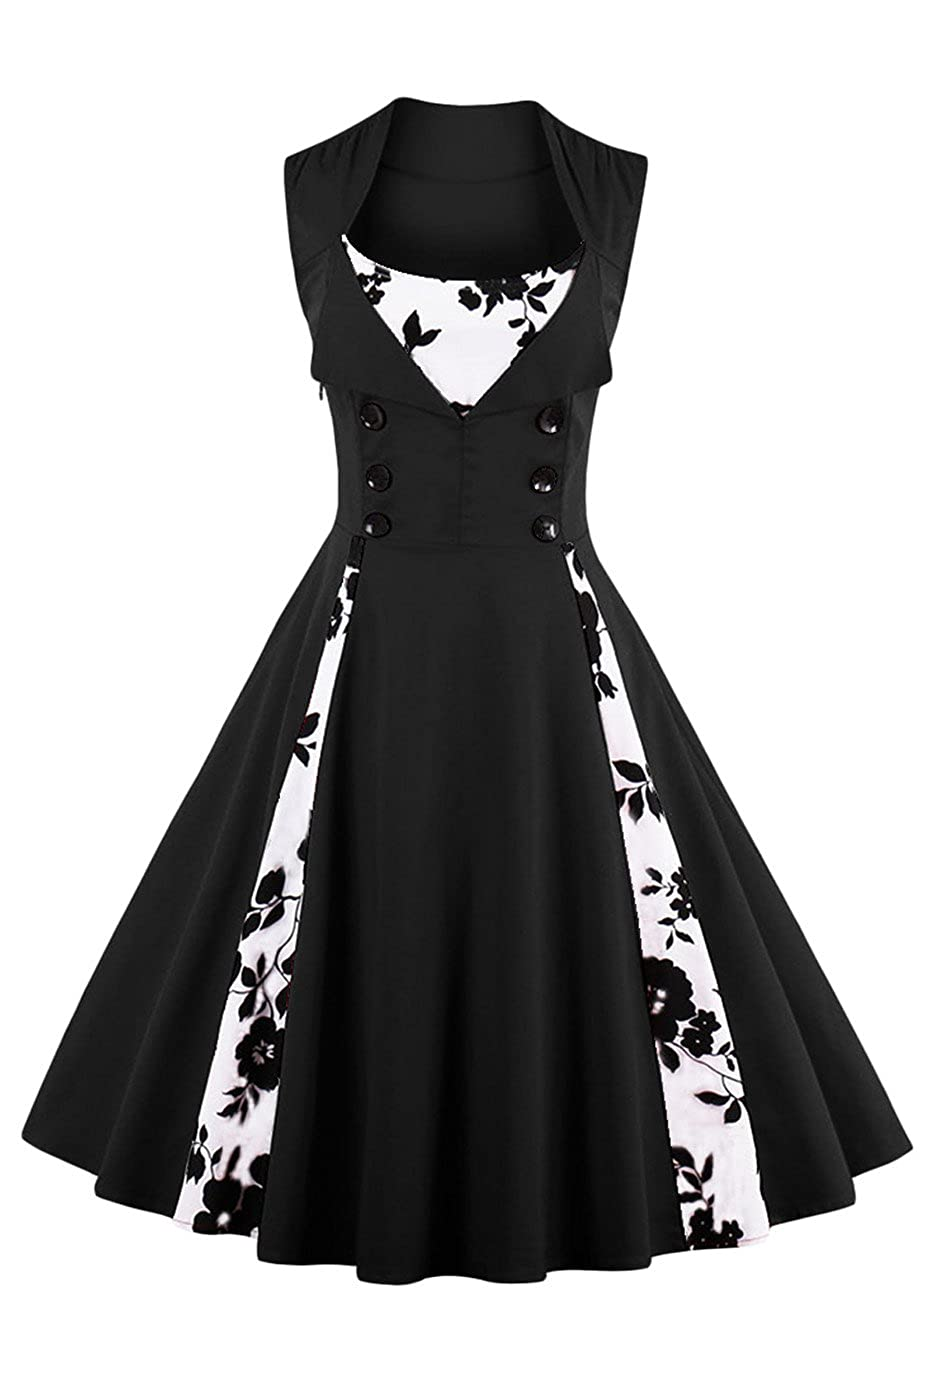 TALLA XXL. VERNASSA 50s Vestidos Vintage,Mujeres 1950s Vintage A-Line Rockabilly Clásico Verano Dress for Evening Party Cocktail, Multicolor, S-Plus Size 4XL 1357f-negro XXL